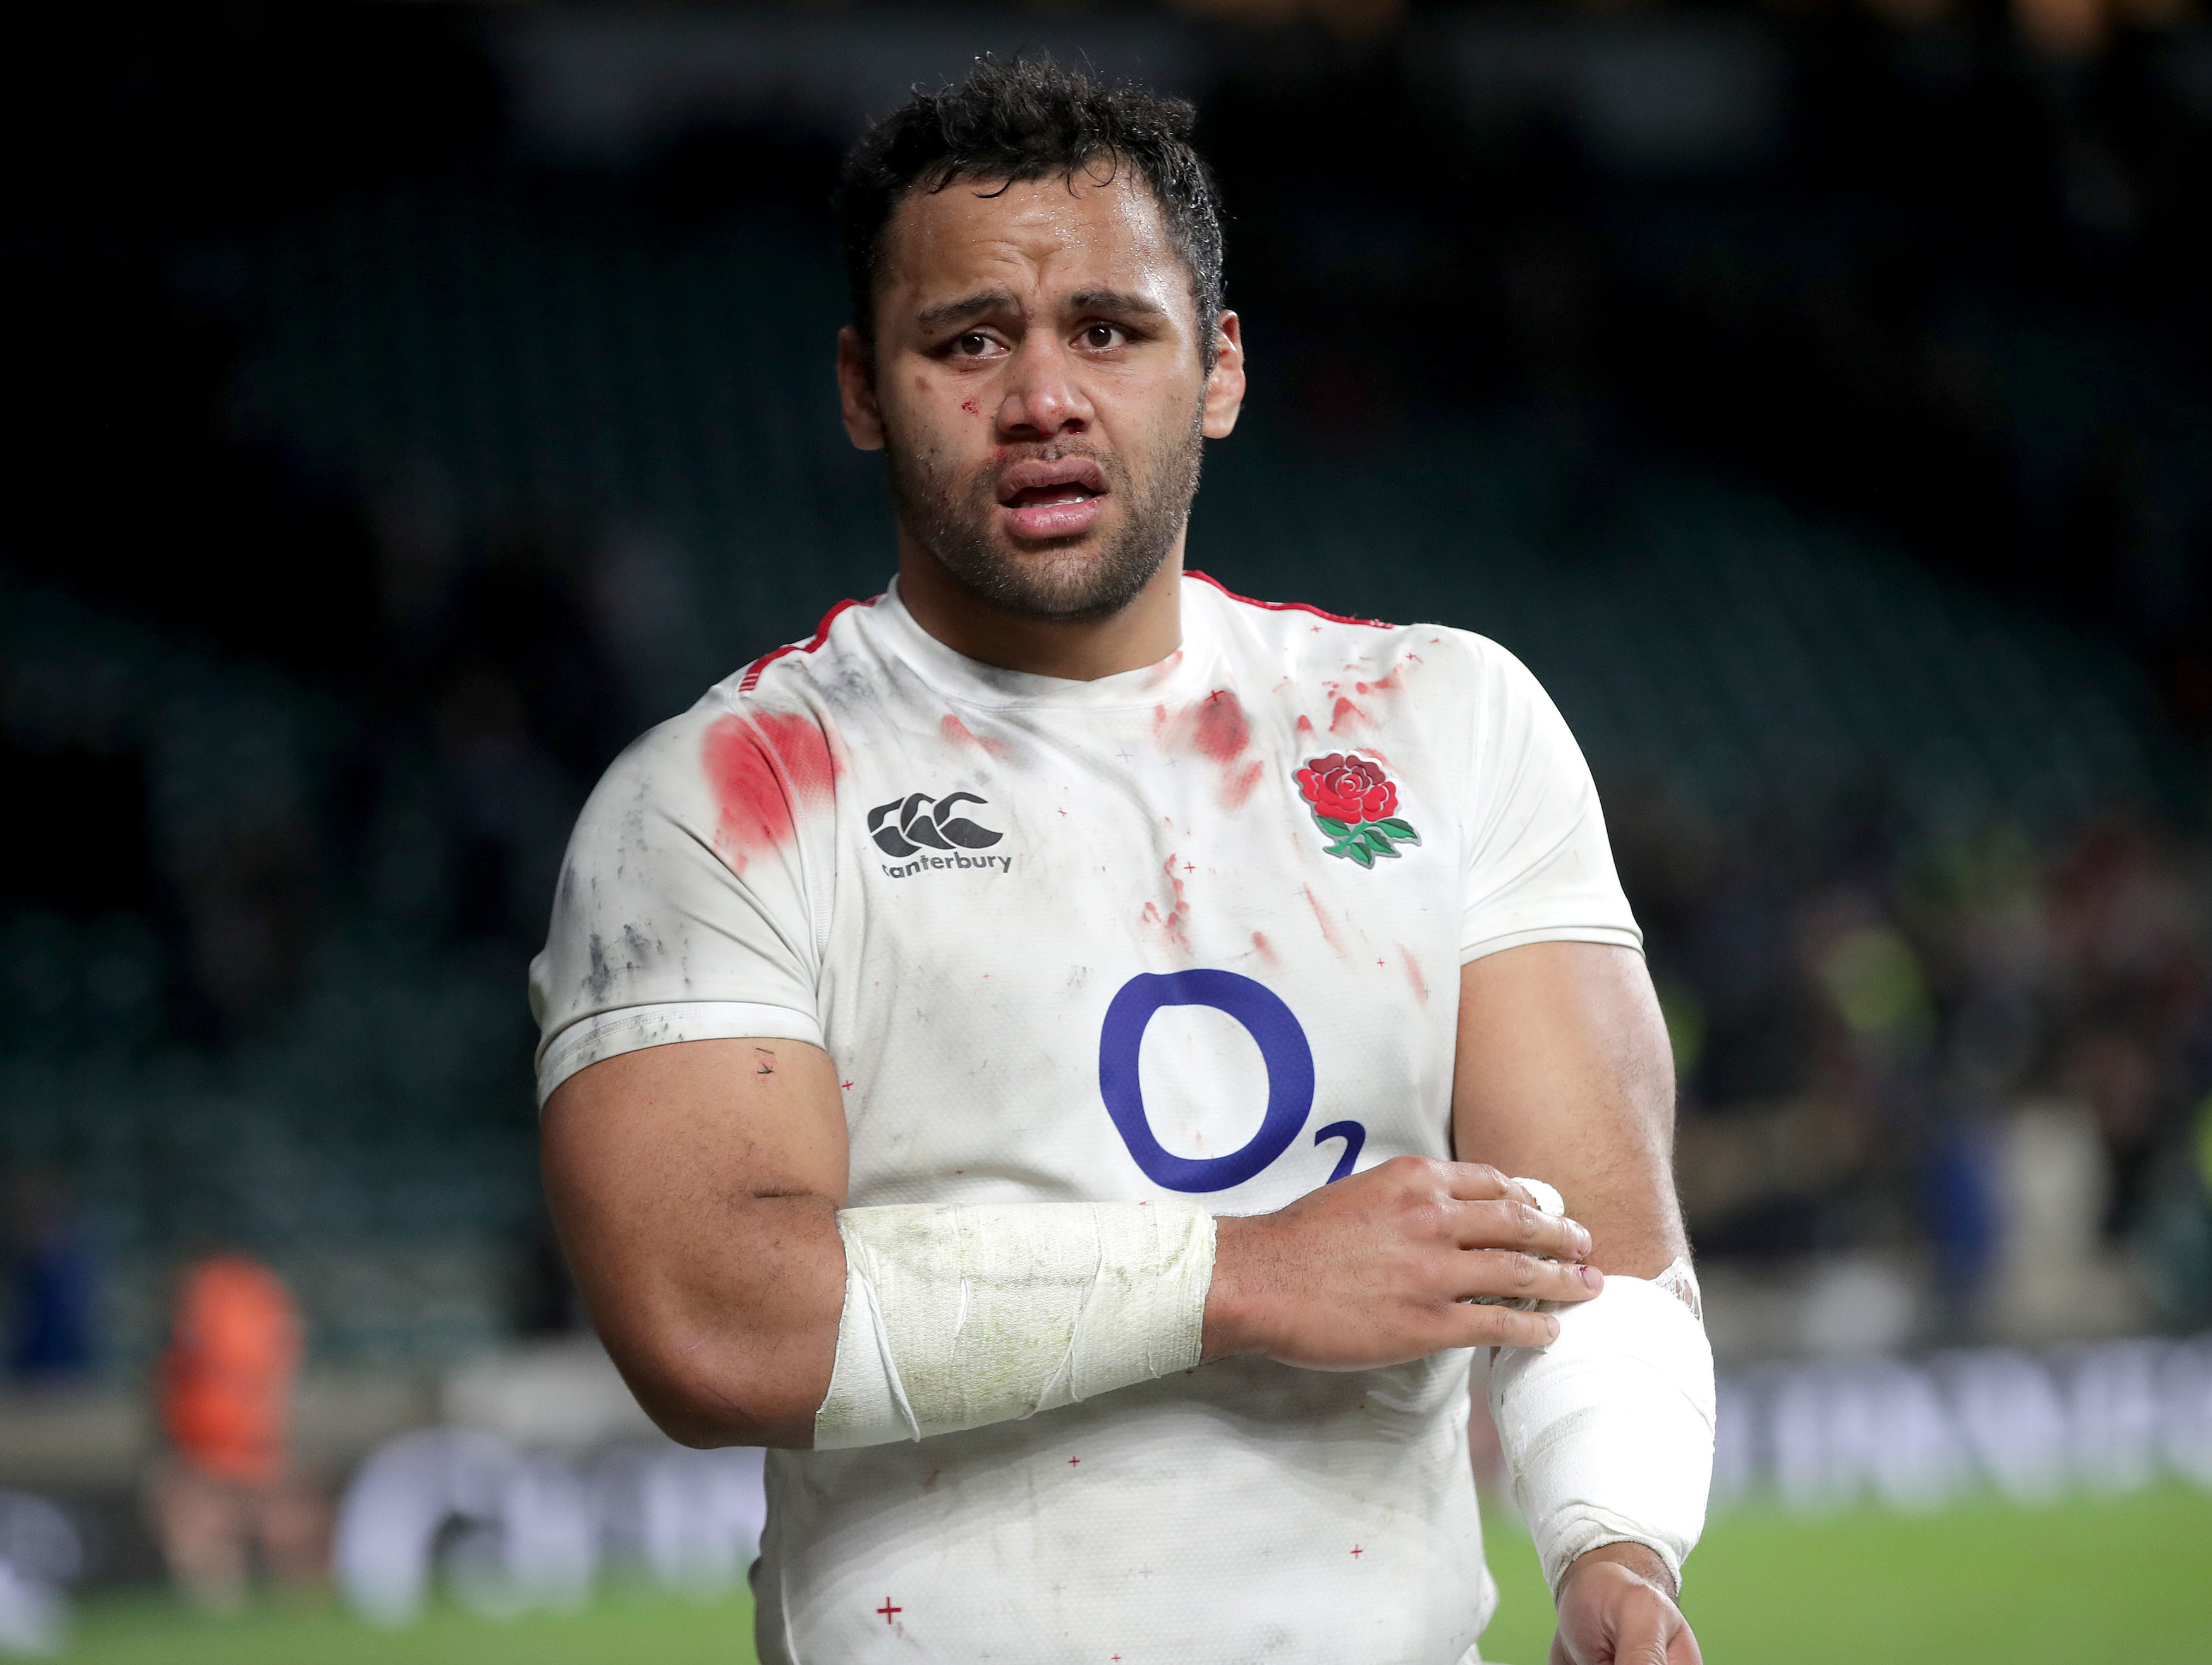 Billy Vunipola made his England debut in 2012 and has since won 52 caps